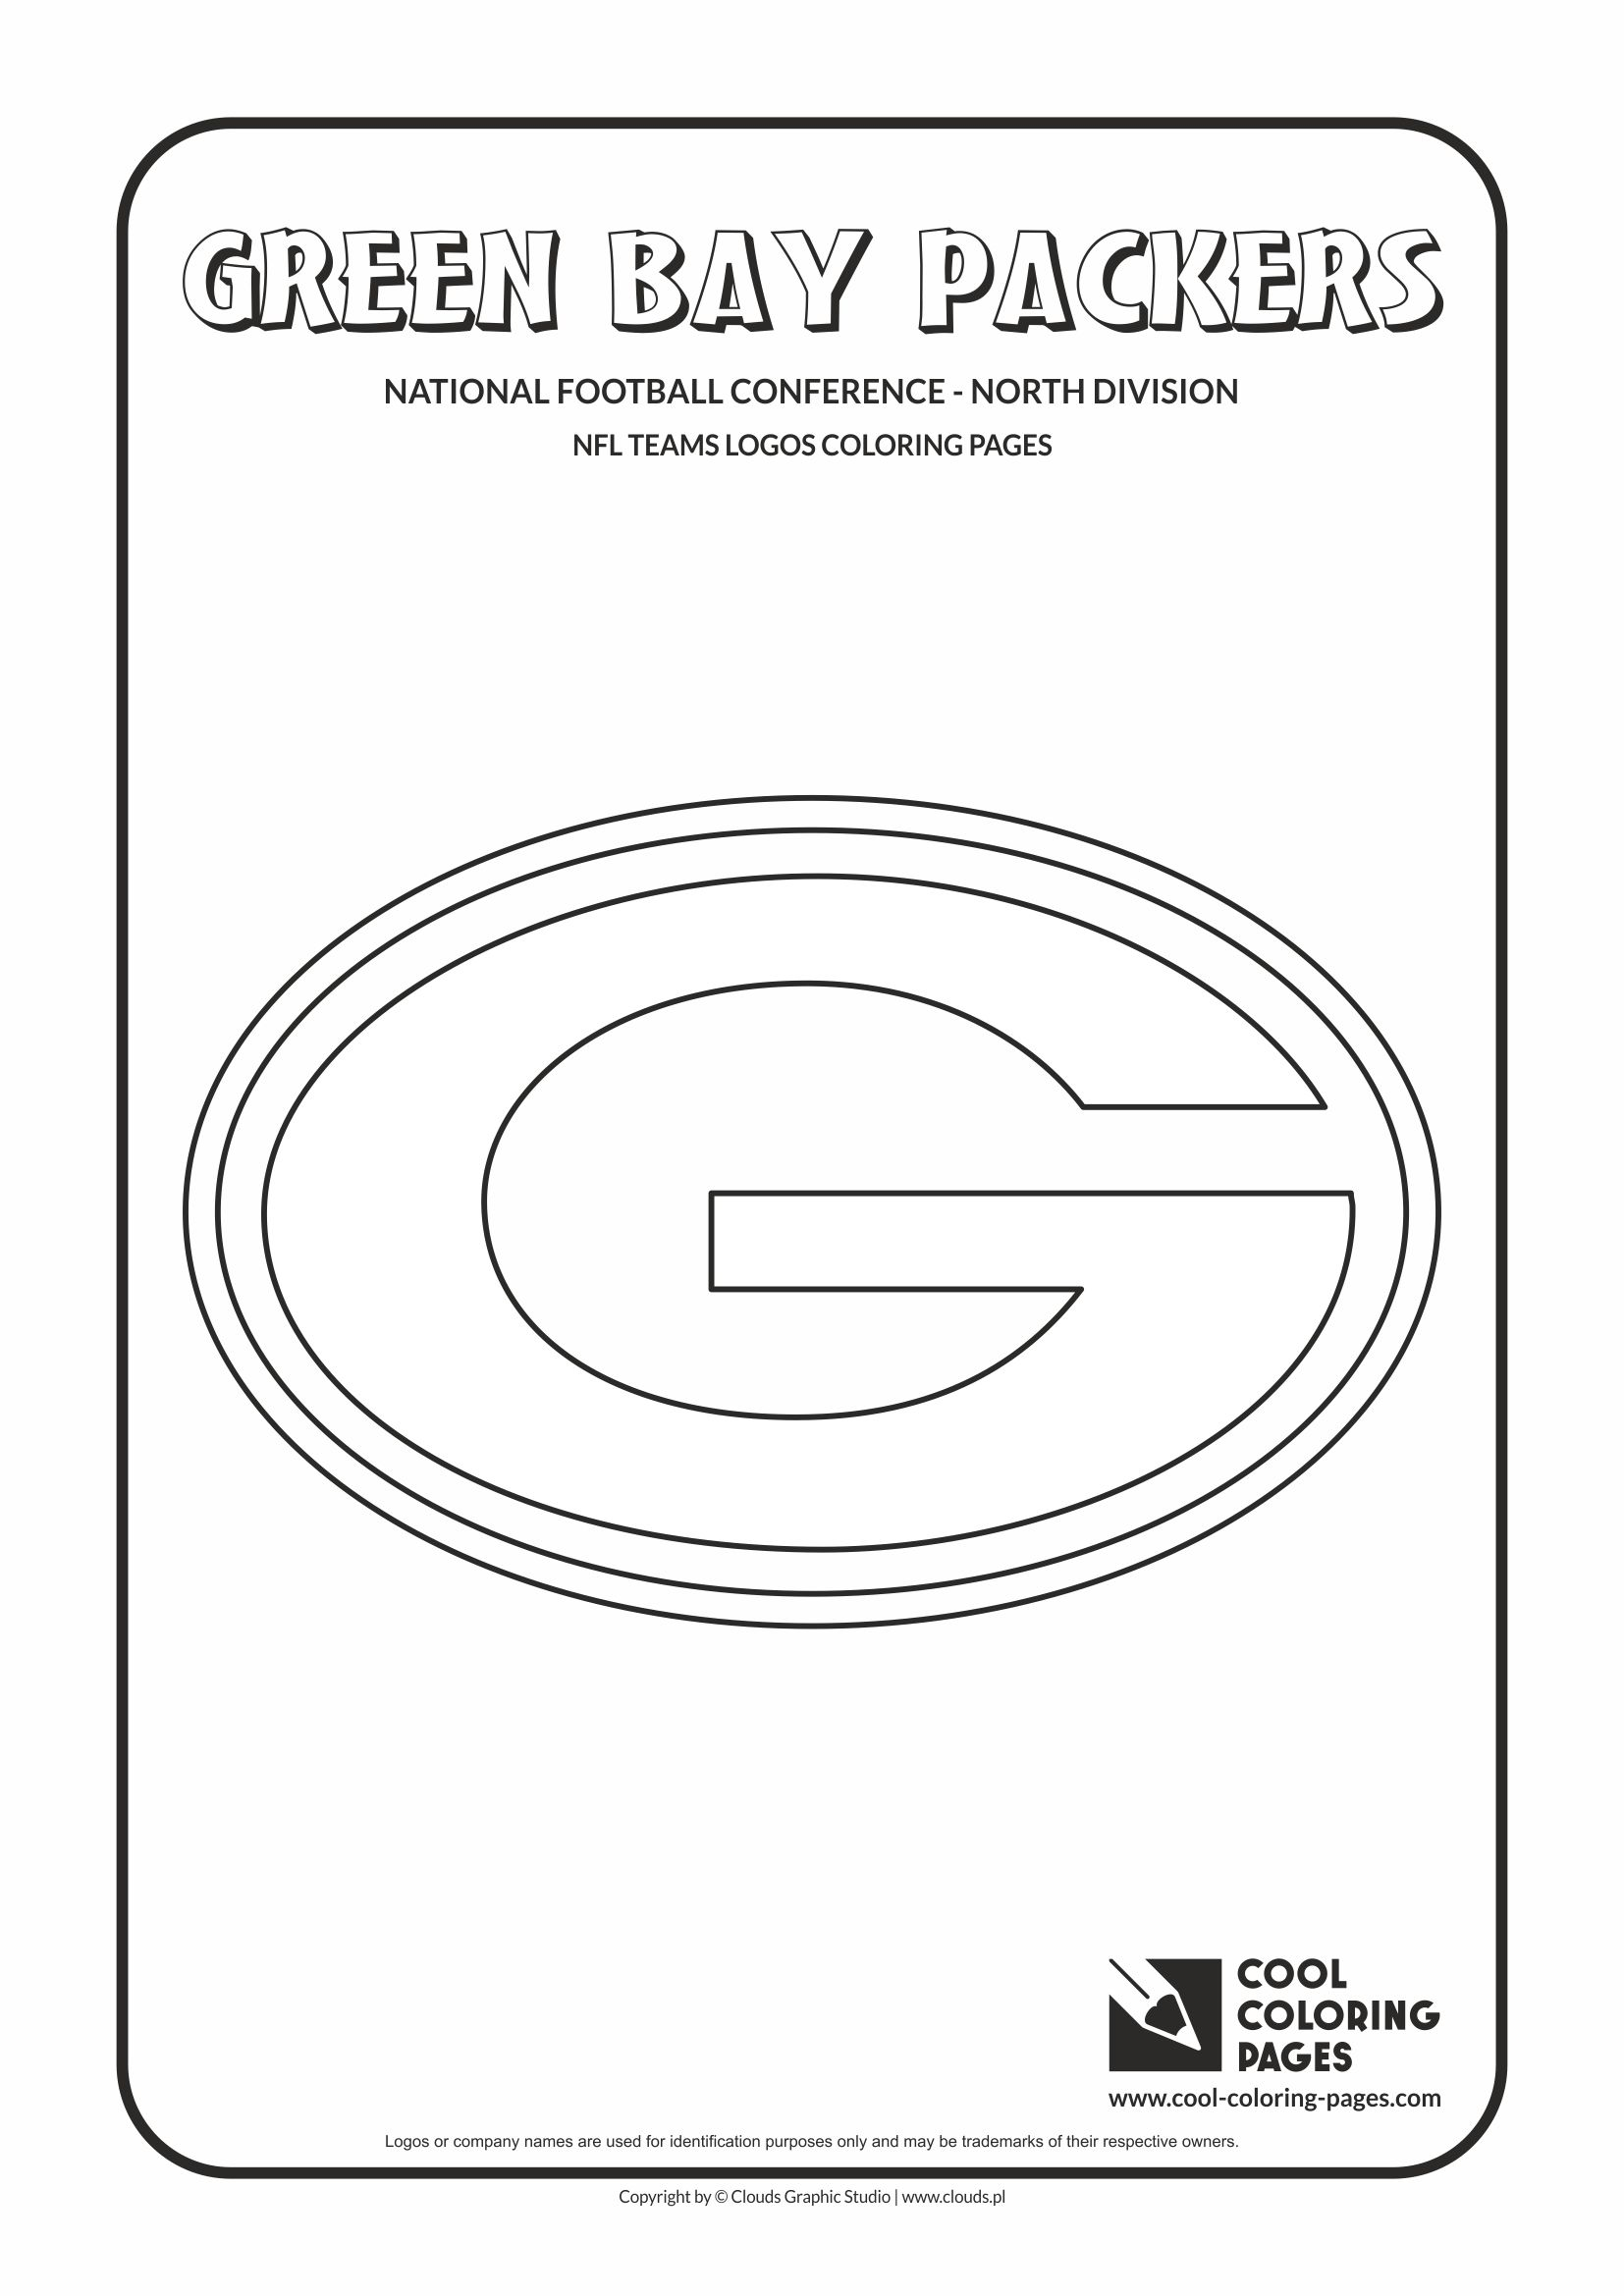 cool coloring pages nfl american football clubs logos national football conference north division green bay packers